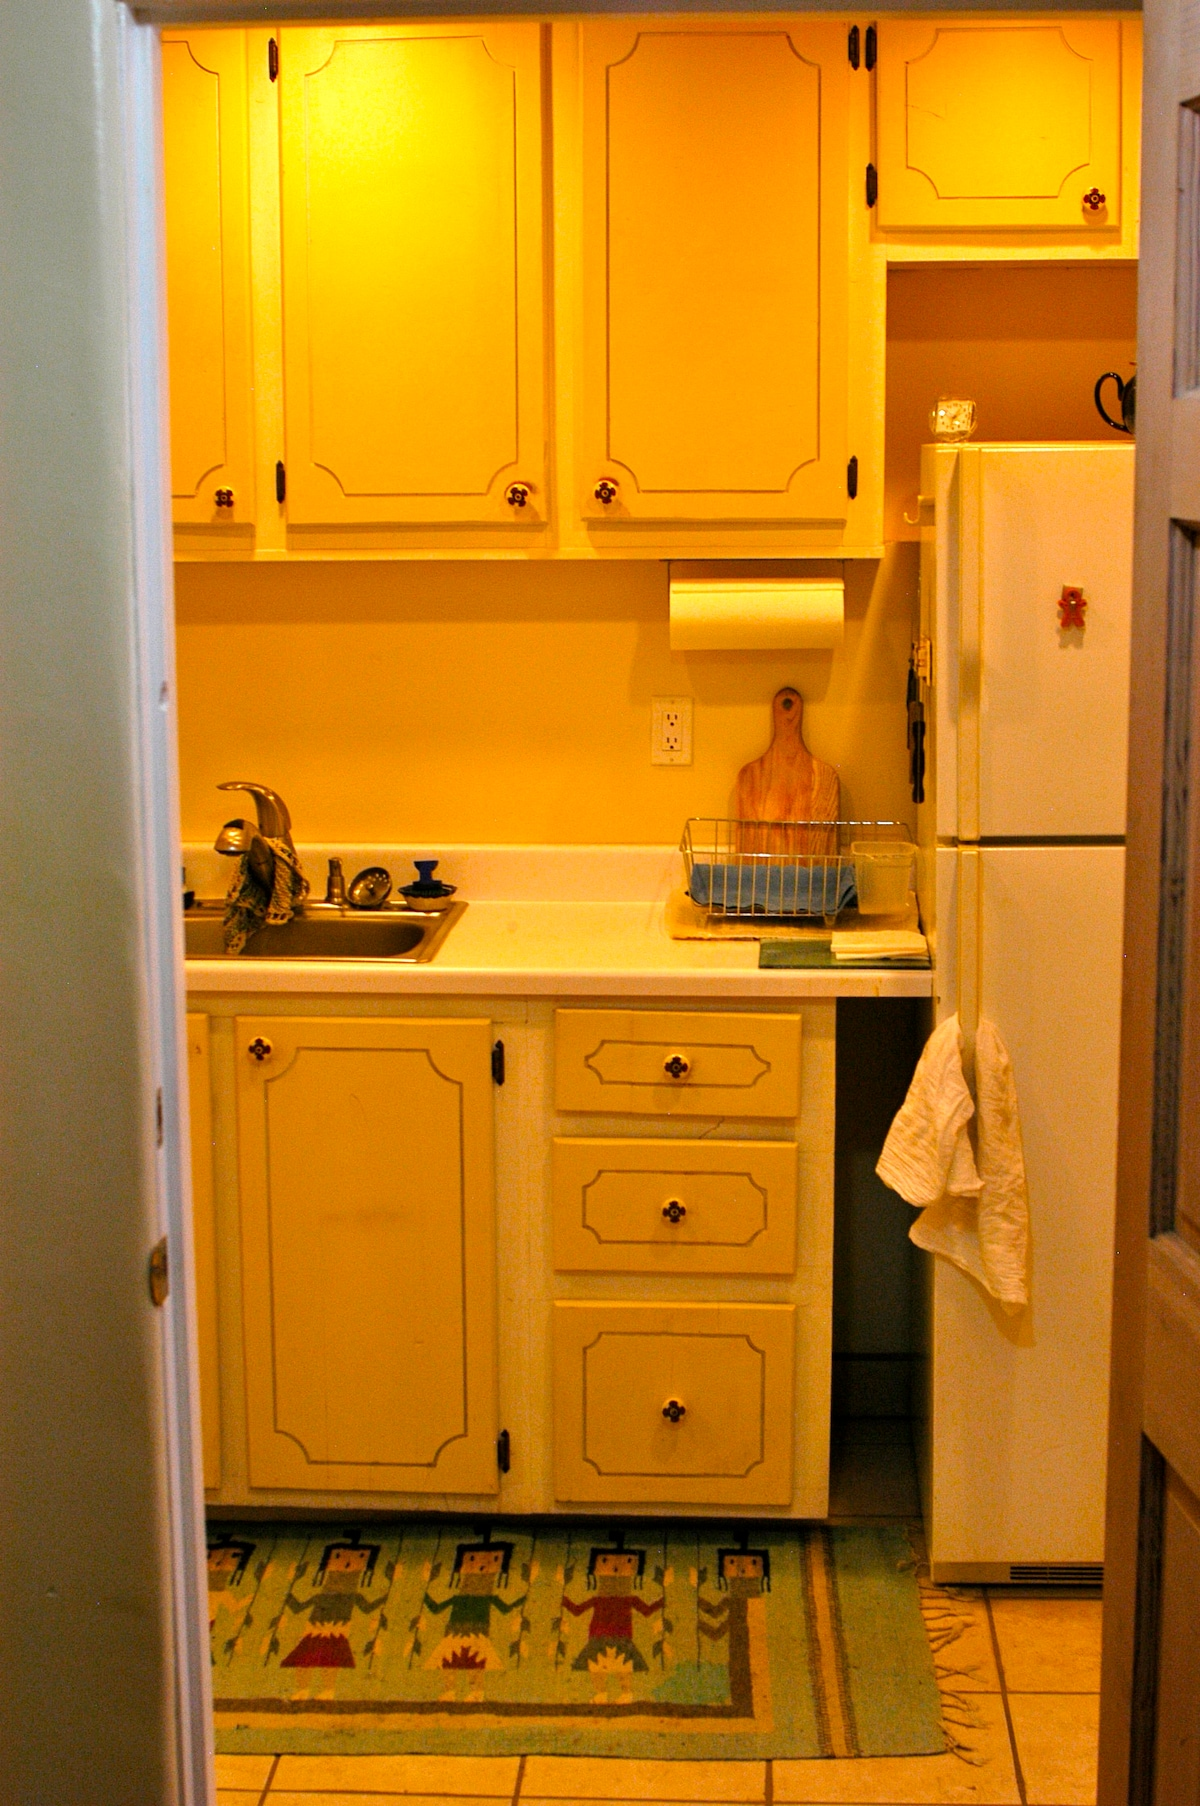 Kitchen and bathroom shared during the day whem I am working in my studio. Sleeping area private and secure.